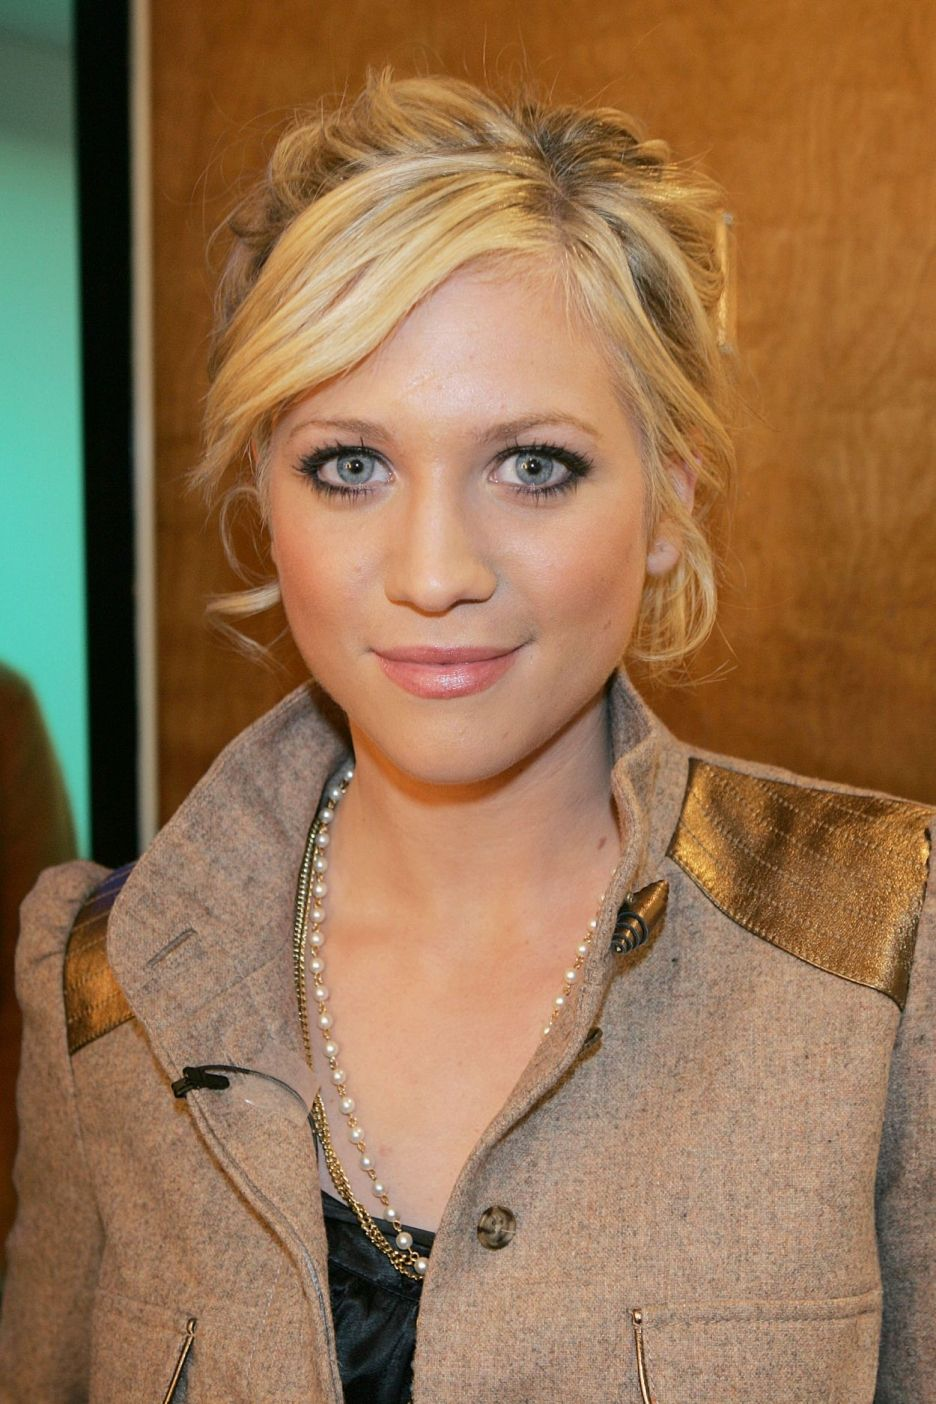 Young Brittany Snow nudes (84 foto and video), Tits, Sideboobs, Twitter, braless 2020